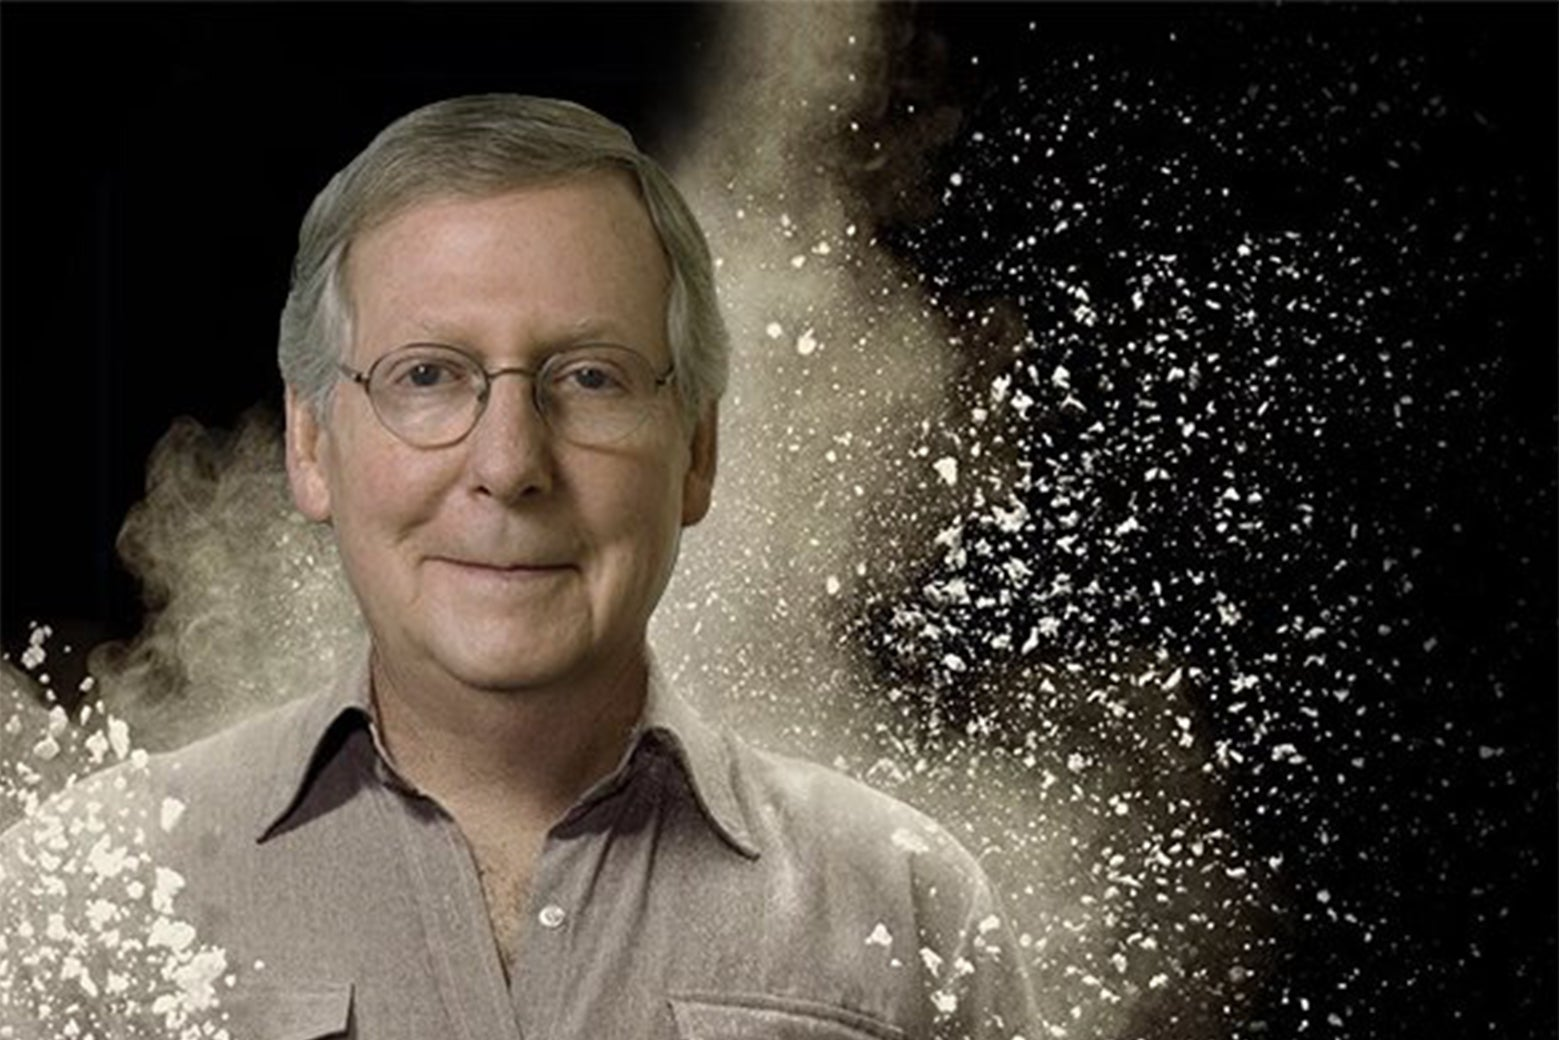 Mitch McConnell photoshopped into a promotional image from Narcos.